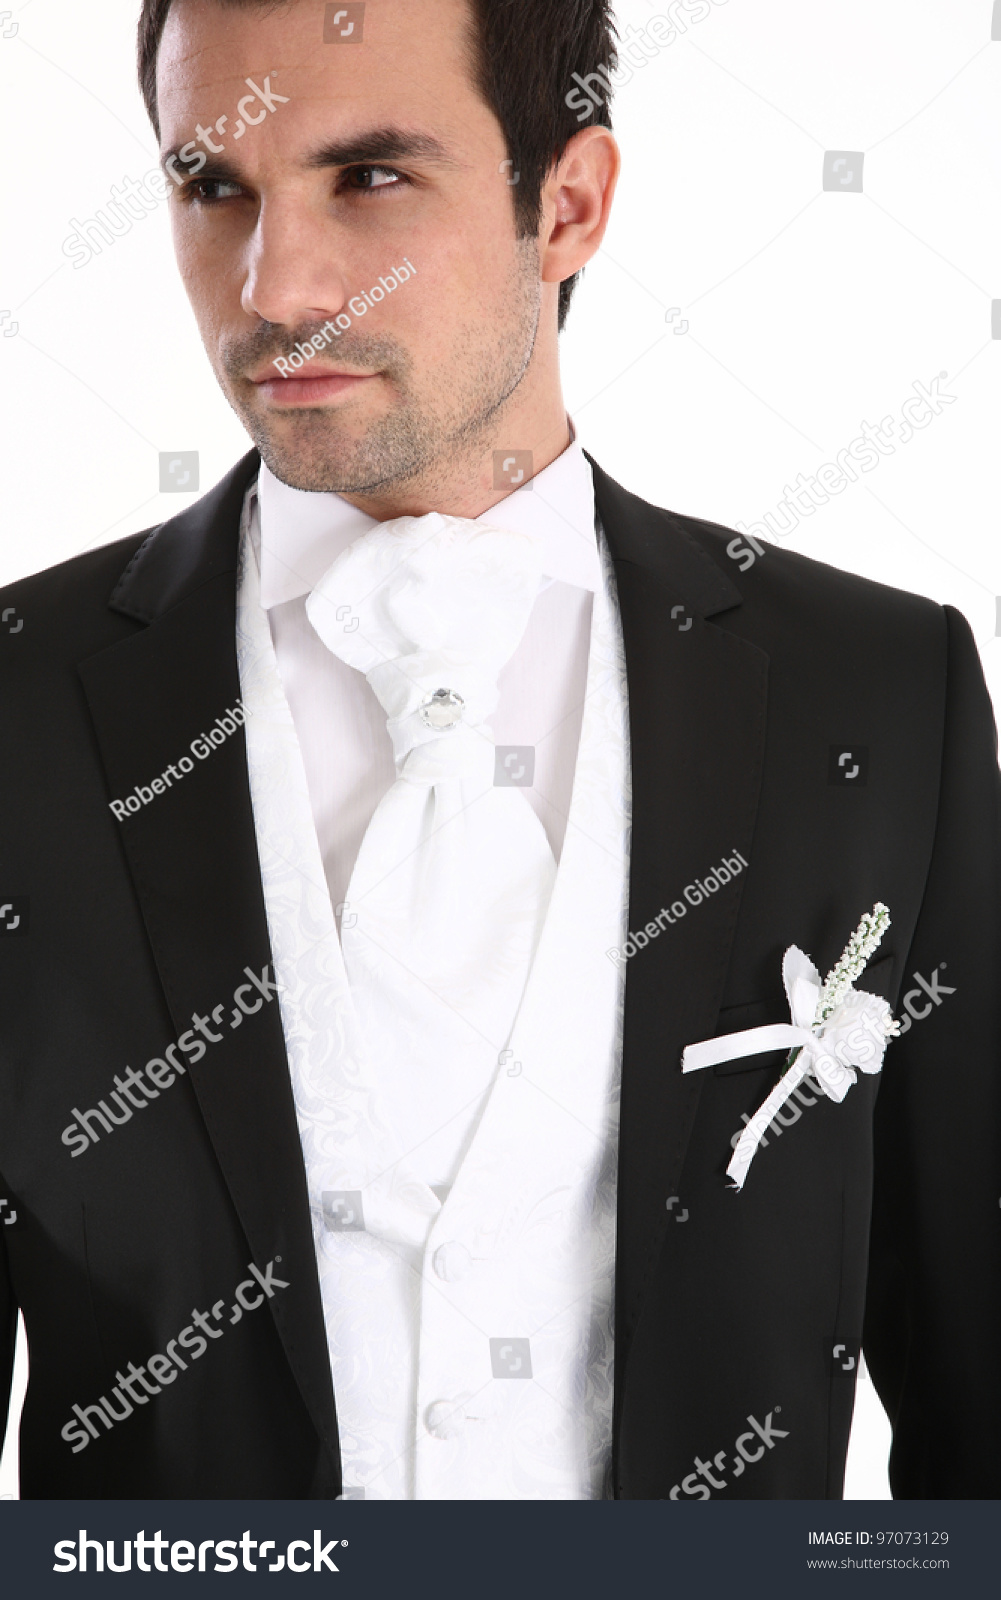 Portrait Of Handsome Man In Tuxedo Stock Photo 97073129 ...